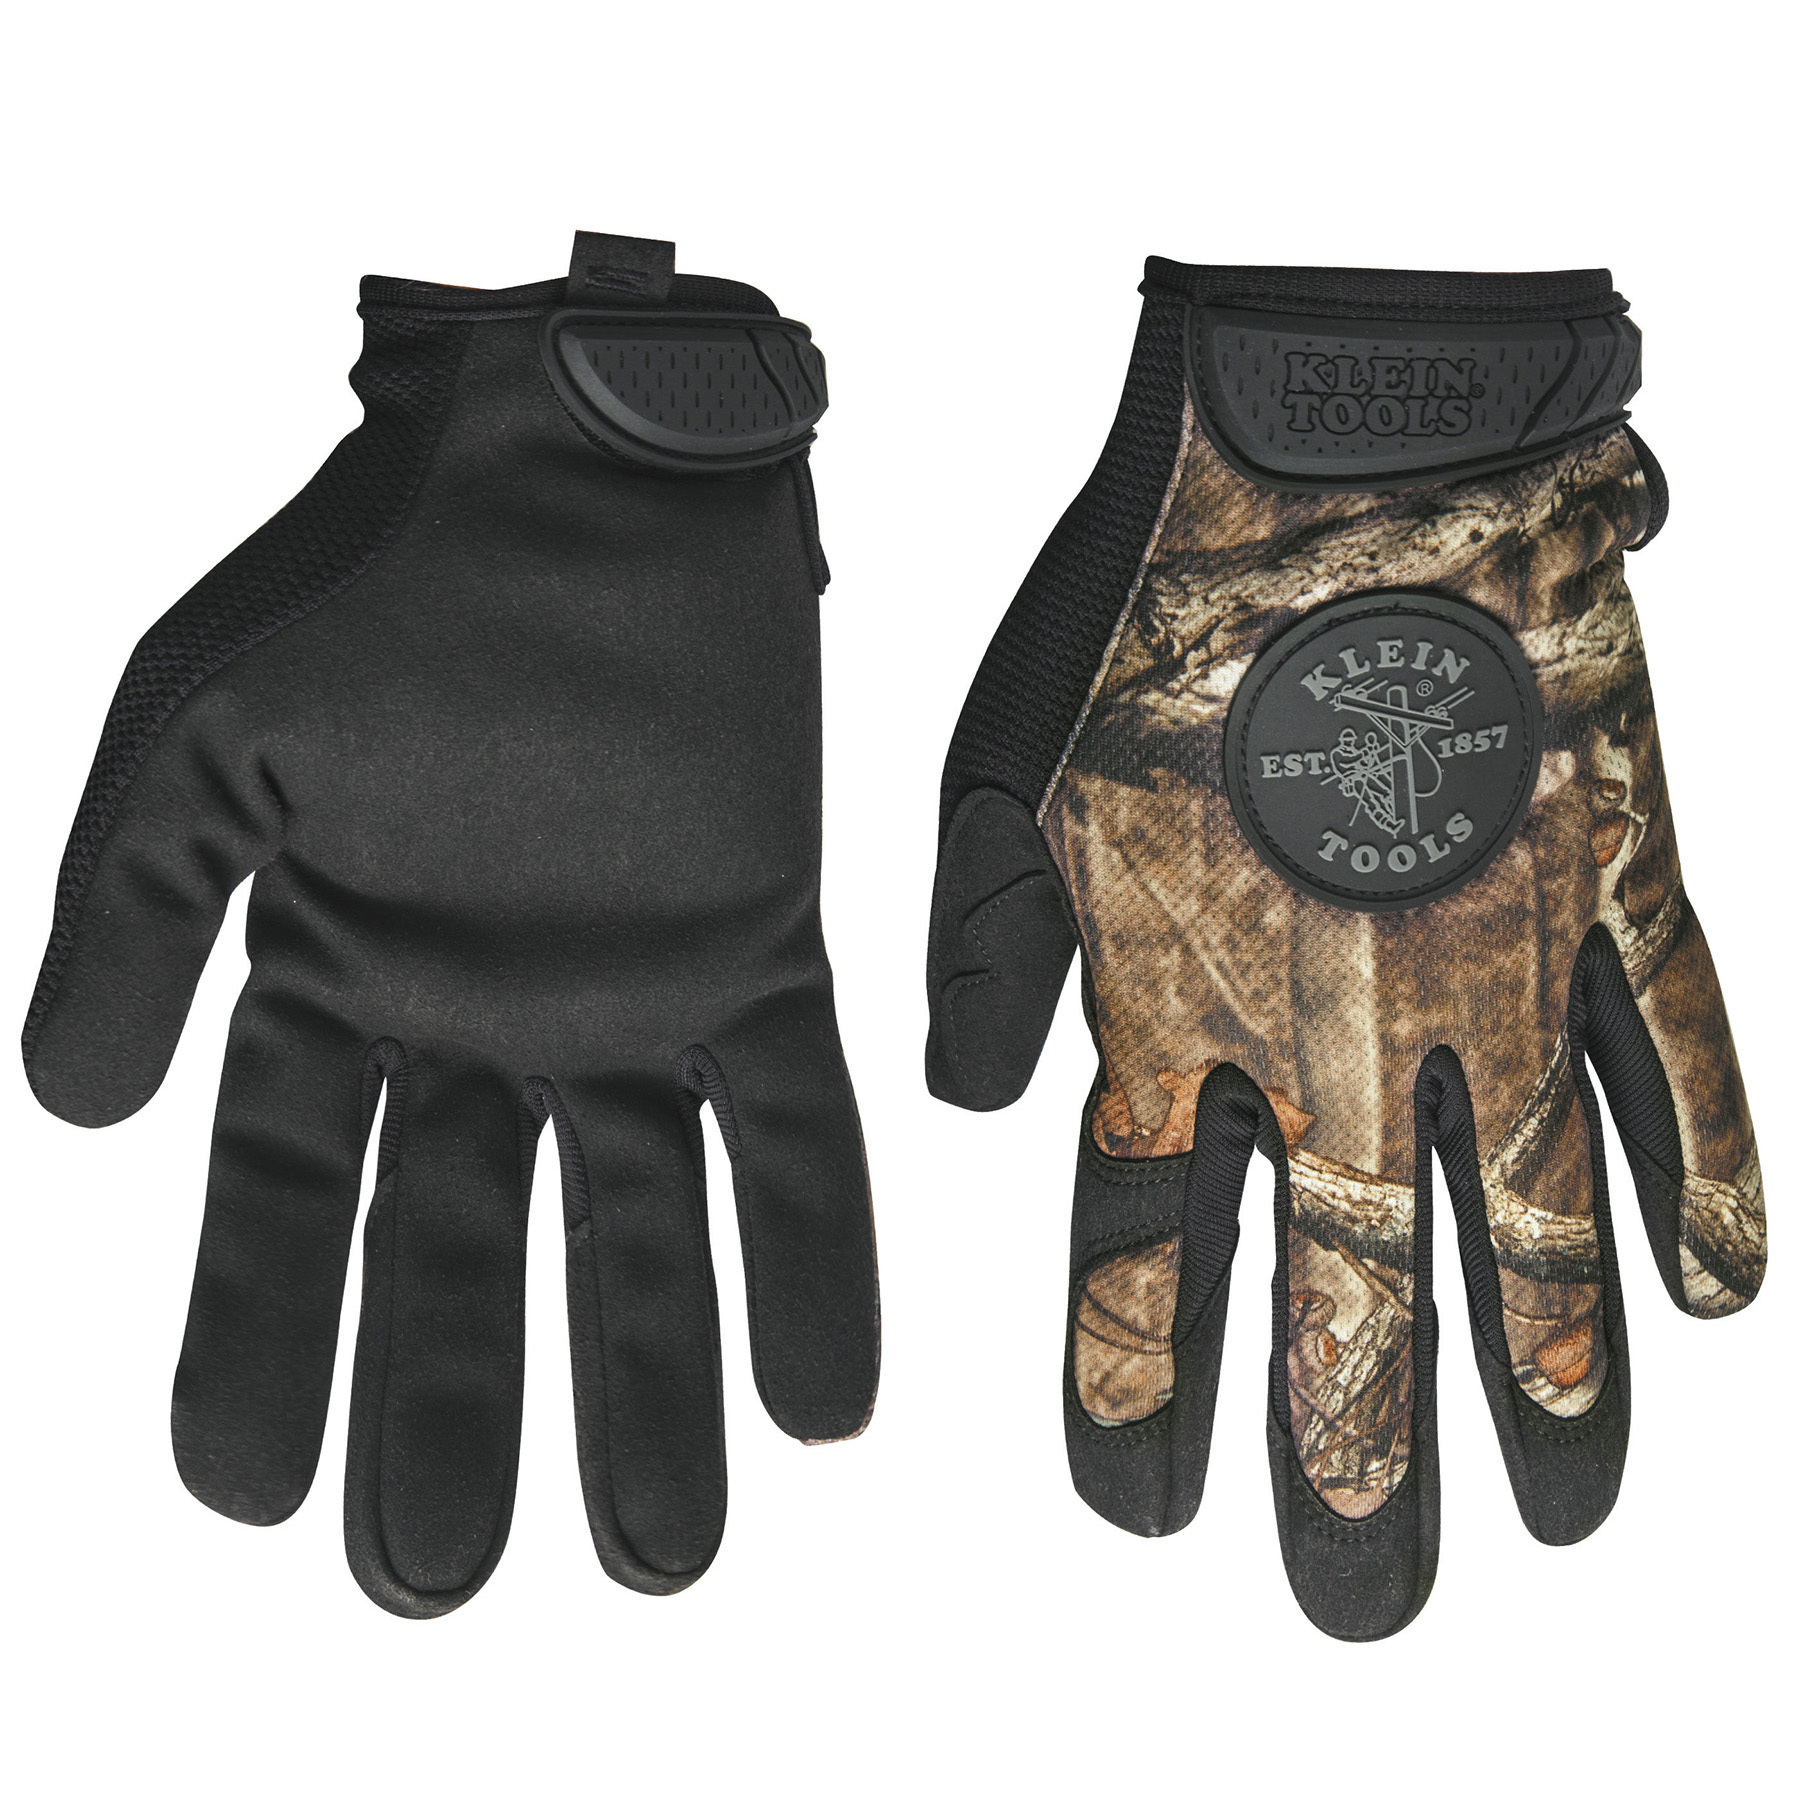 KLE 40210 Journeyman Camouflage Gloves, size XL